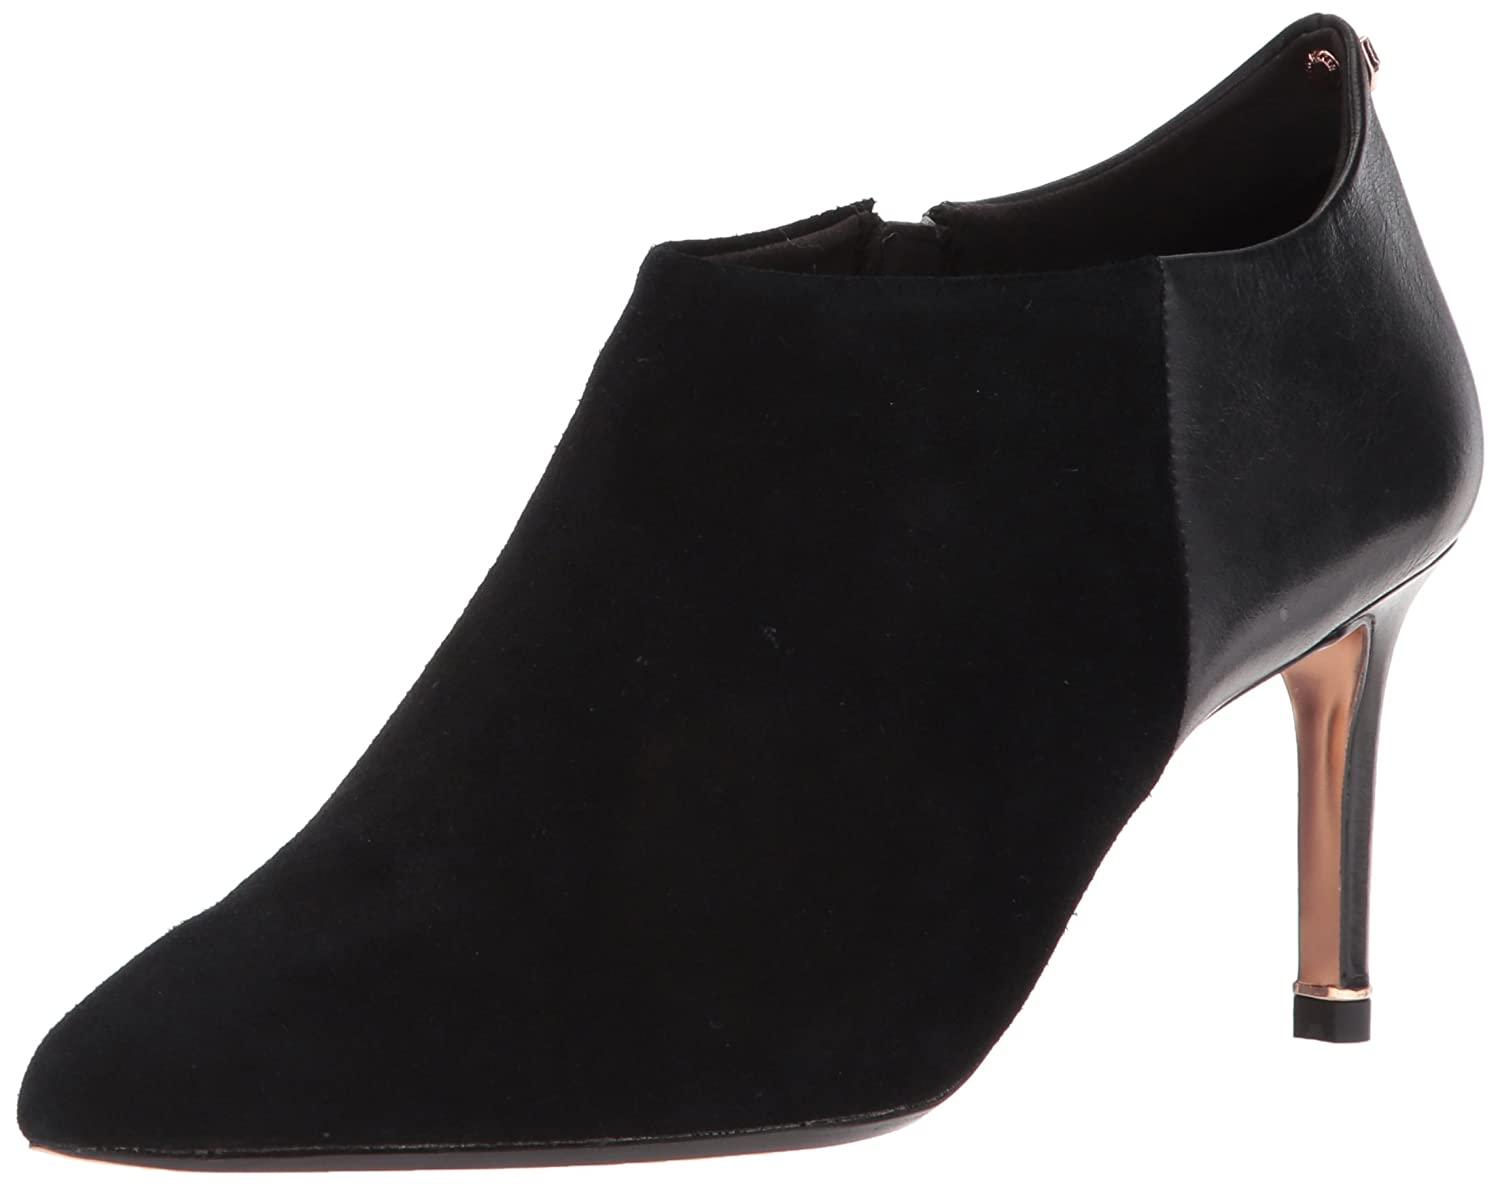 Ted Baker Women's Akashers Ankle Boot B072QSVH2Q 6.5 B(M) US|Black